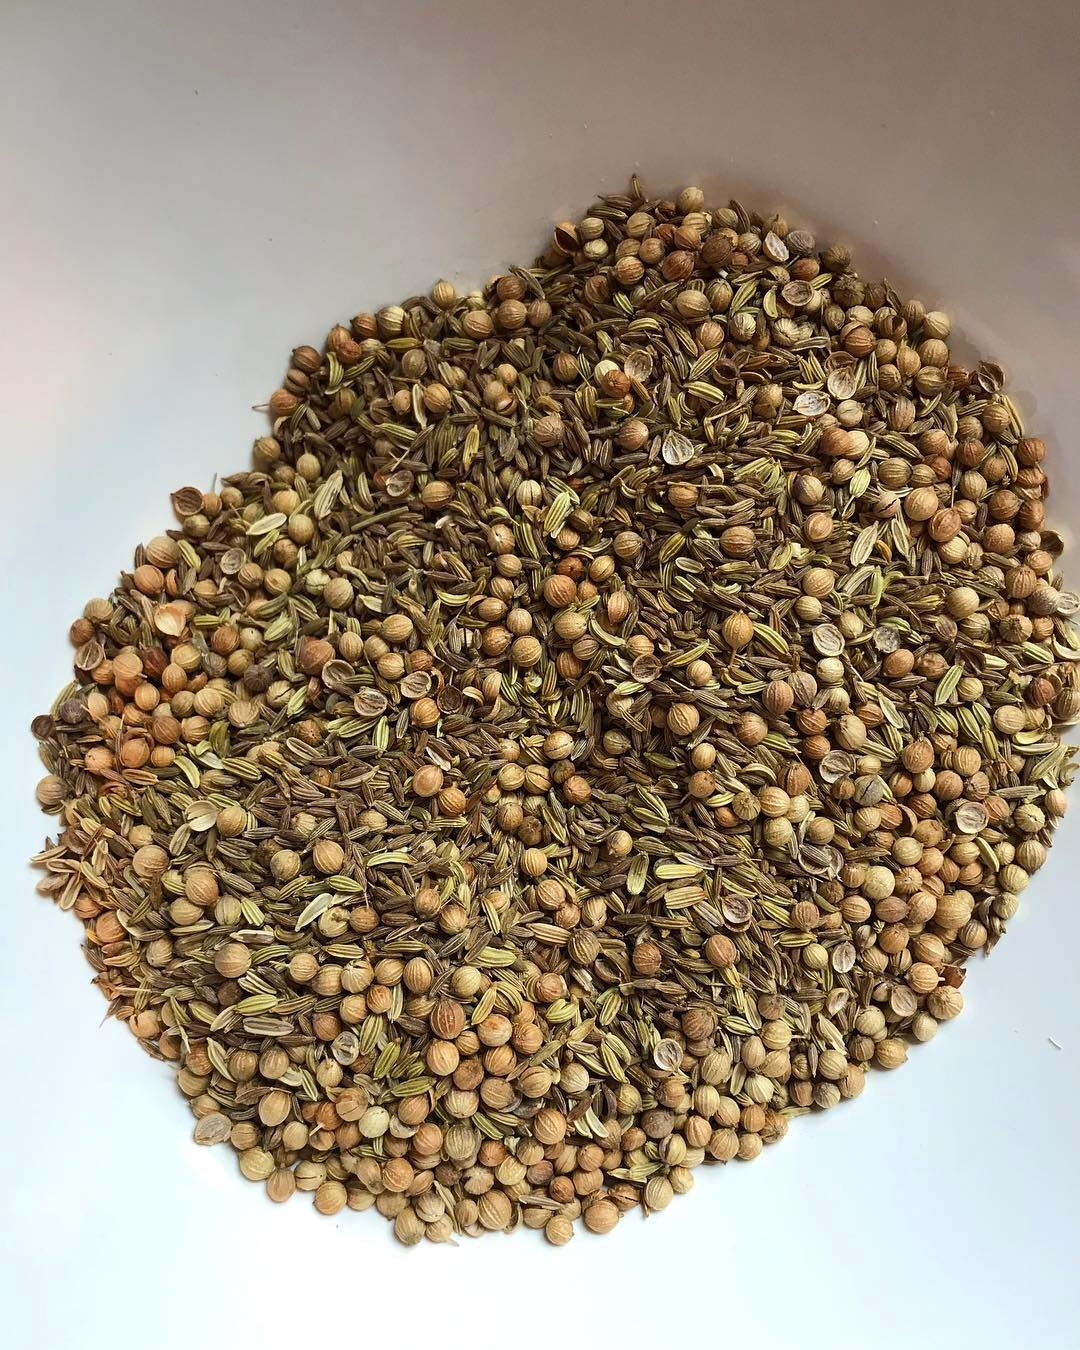 whole seeds, roasted then ground and mixed with friends like ground turmeric.